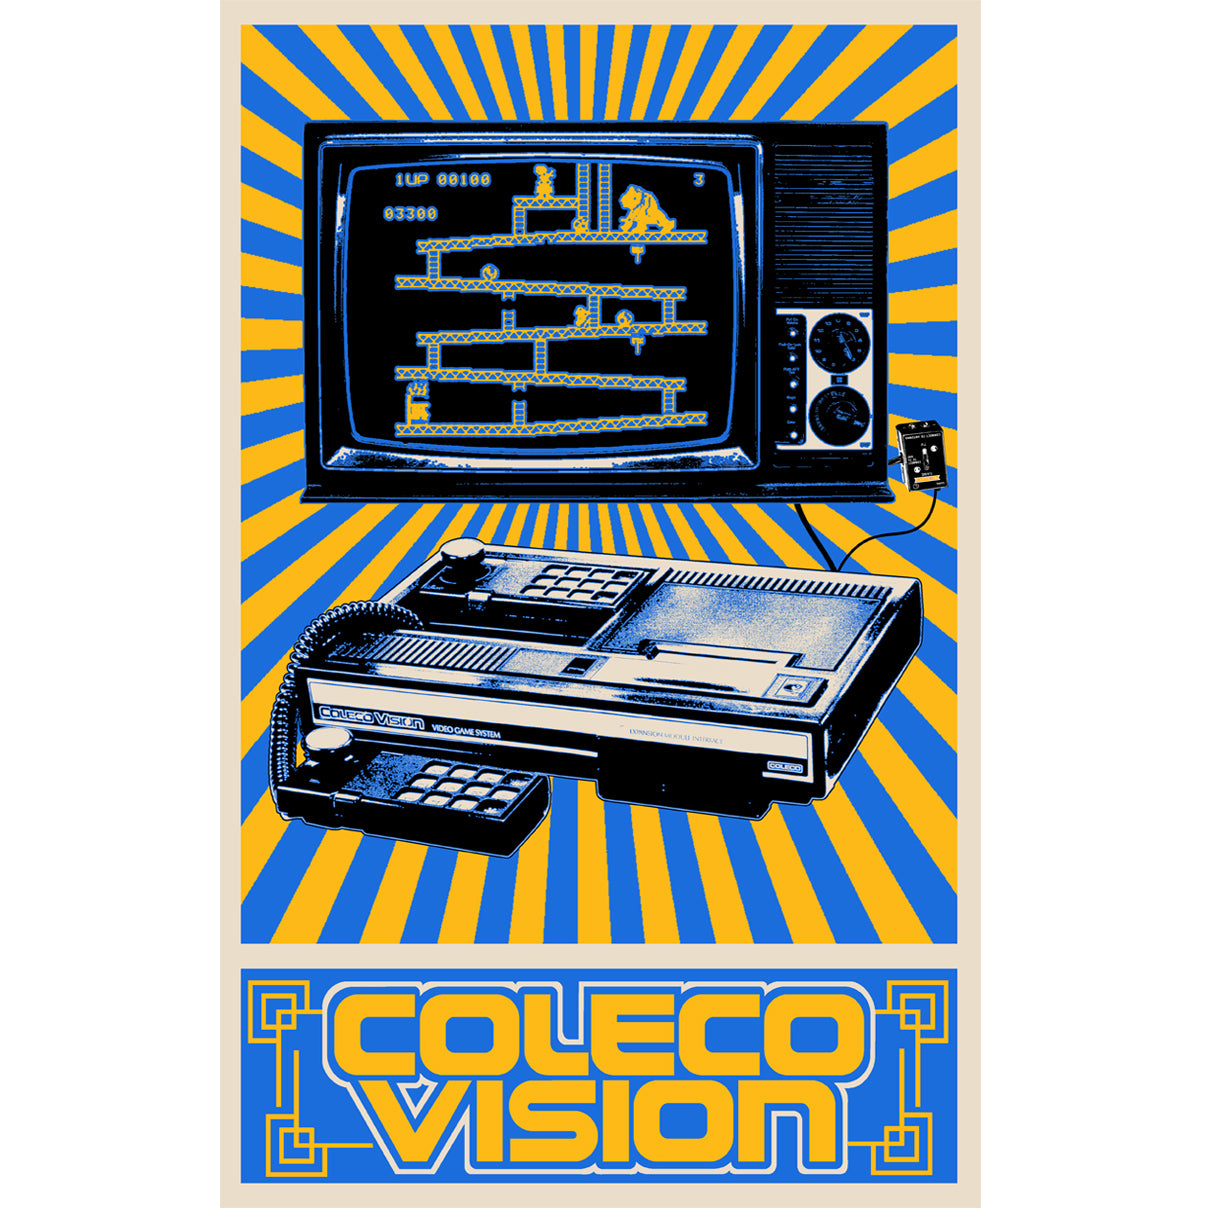 Colecovision retro video game console poster art print 11x17